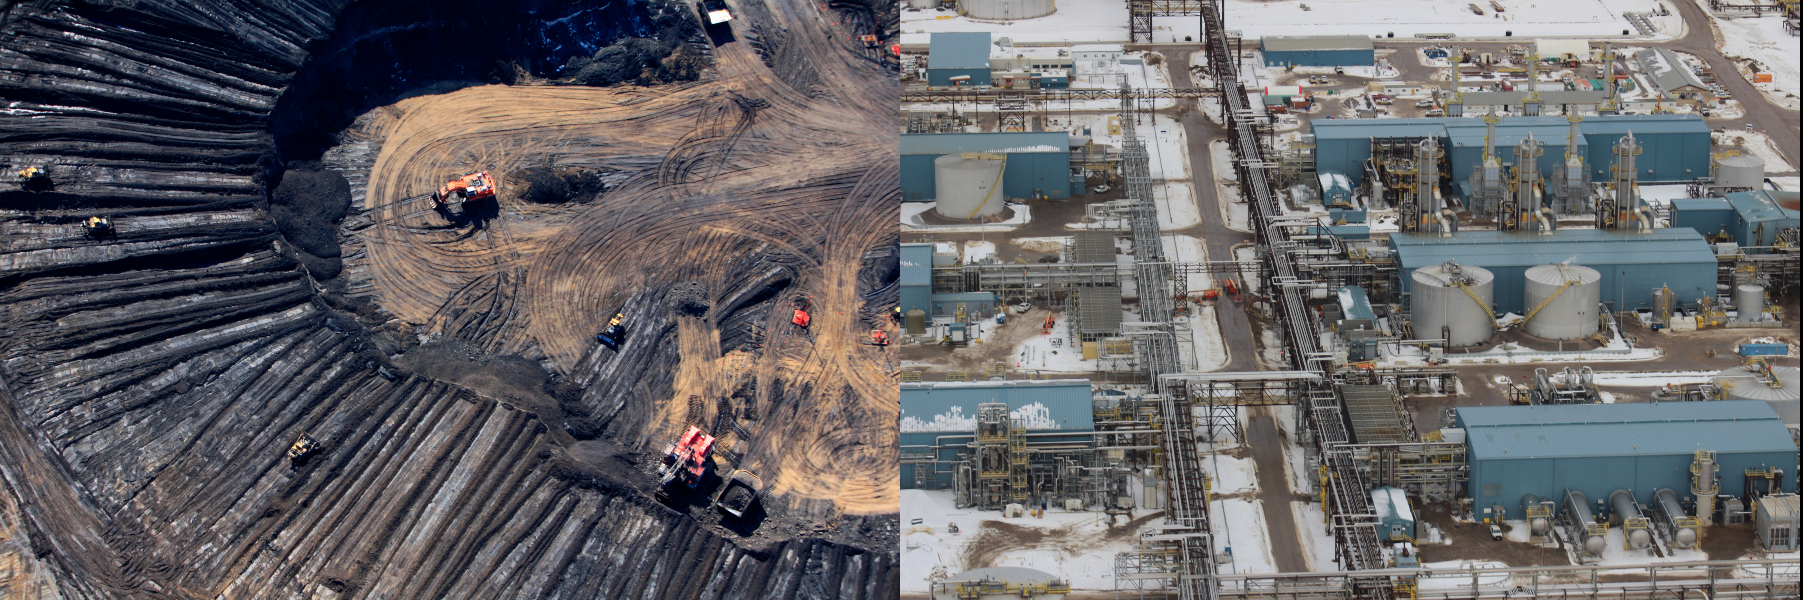 Scientists see disaster looming in world production of coal, oil and